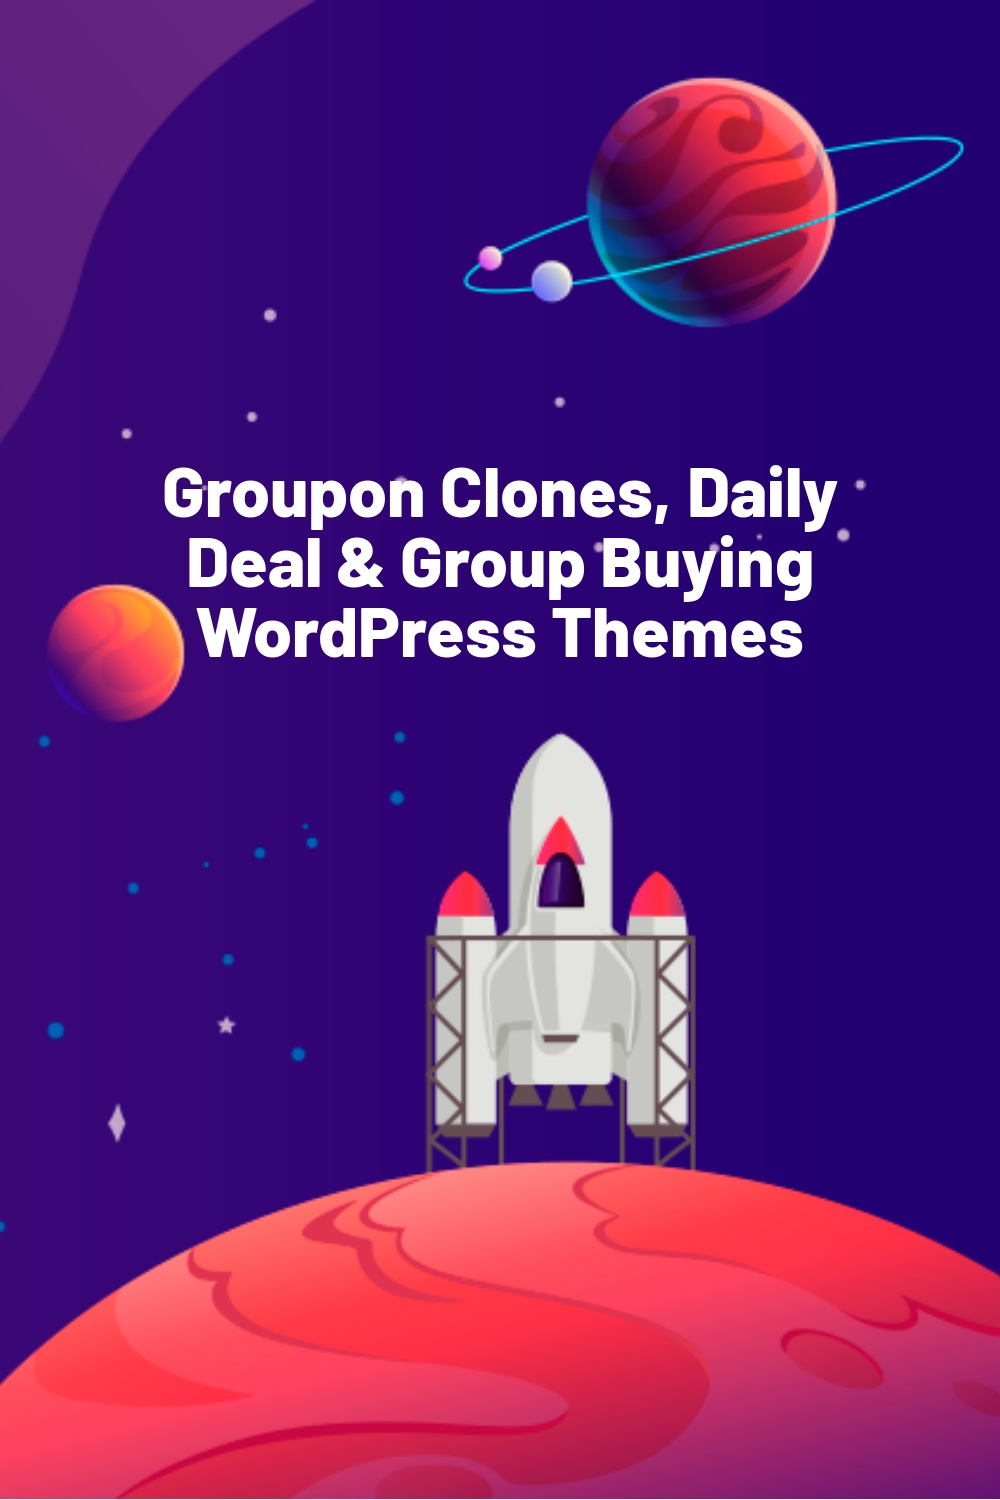 Groupon Clones, Daily Deal & Group Buying WordPress Themes